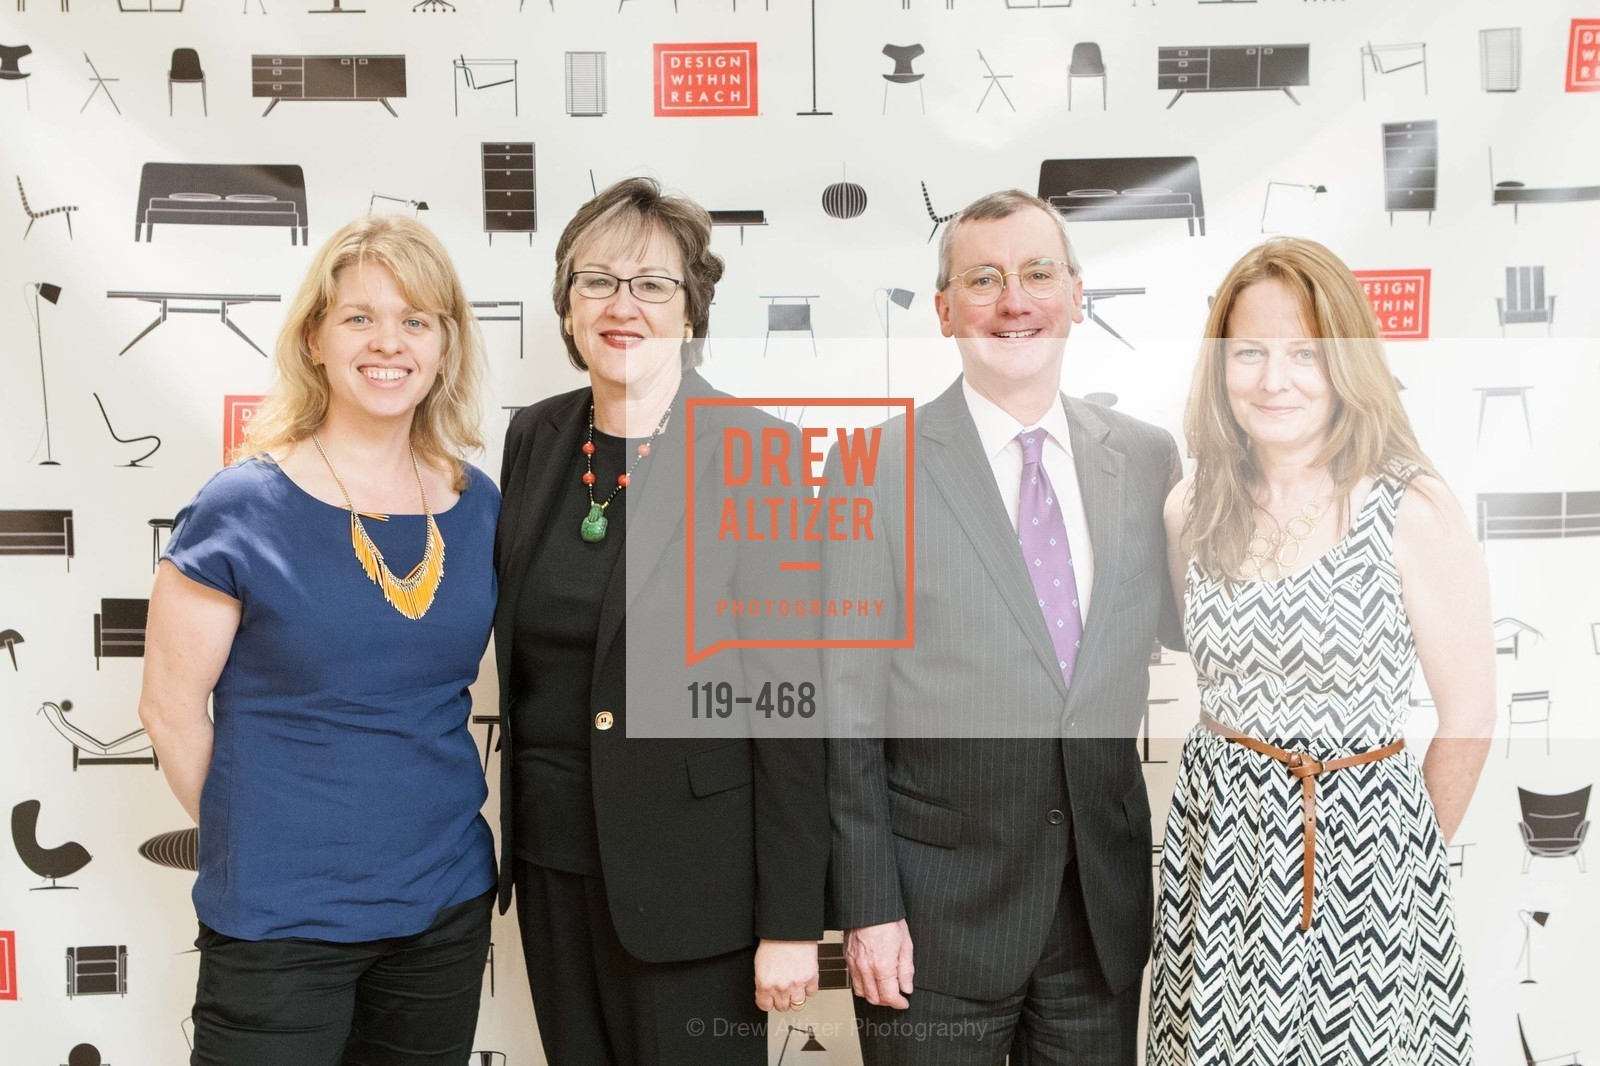 Kelly Prince, Sue Taylor, Allen Matthews, Deb Wandell, DESIGN WITHIN REACH Studio Opening, US. US, January 21st, 2014,Drew Altizer, Drew Altizer Photography, full-service event agency, private events, San Francisco photographer, photographer California